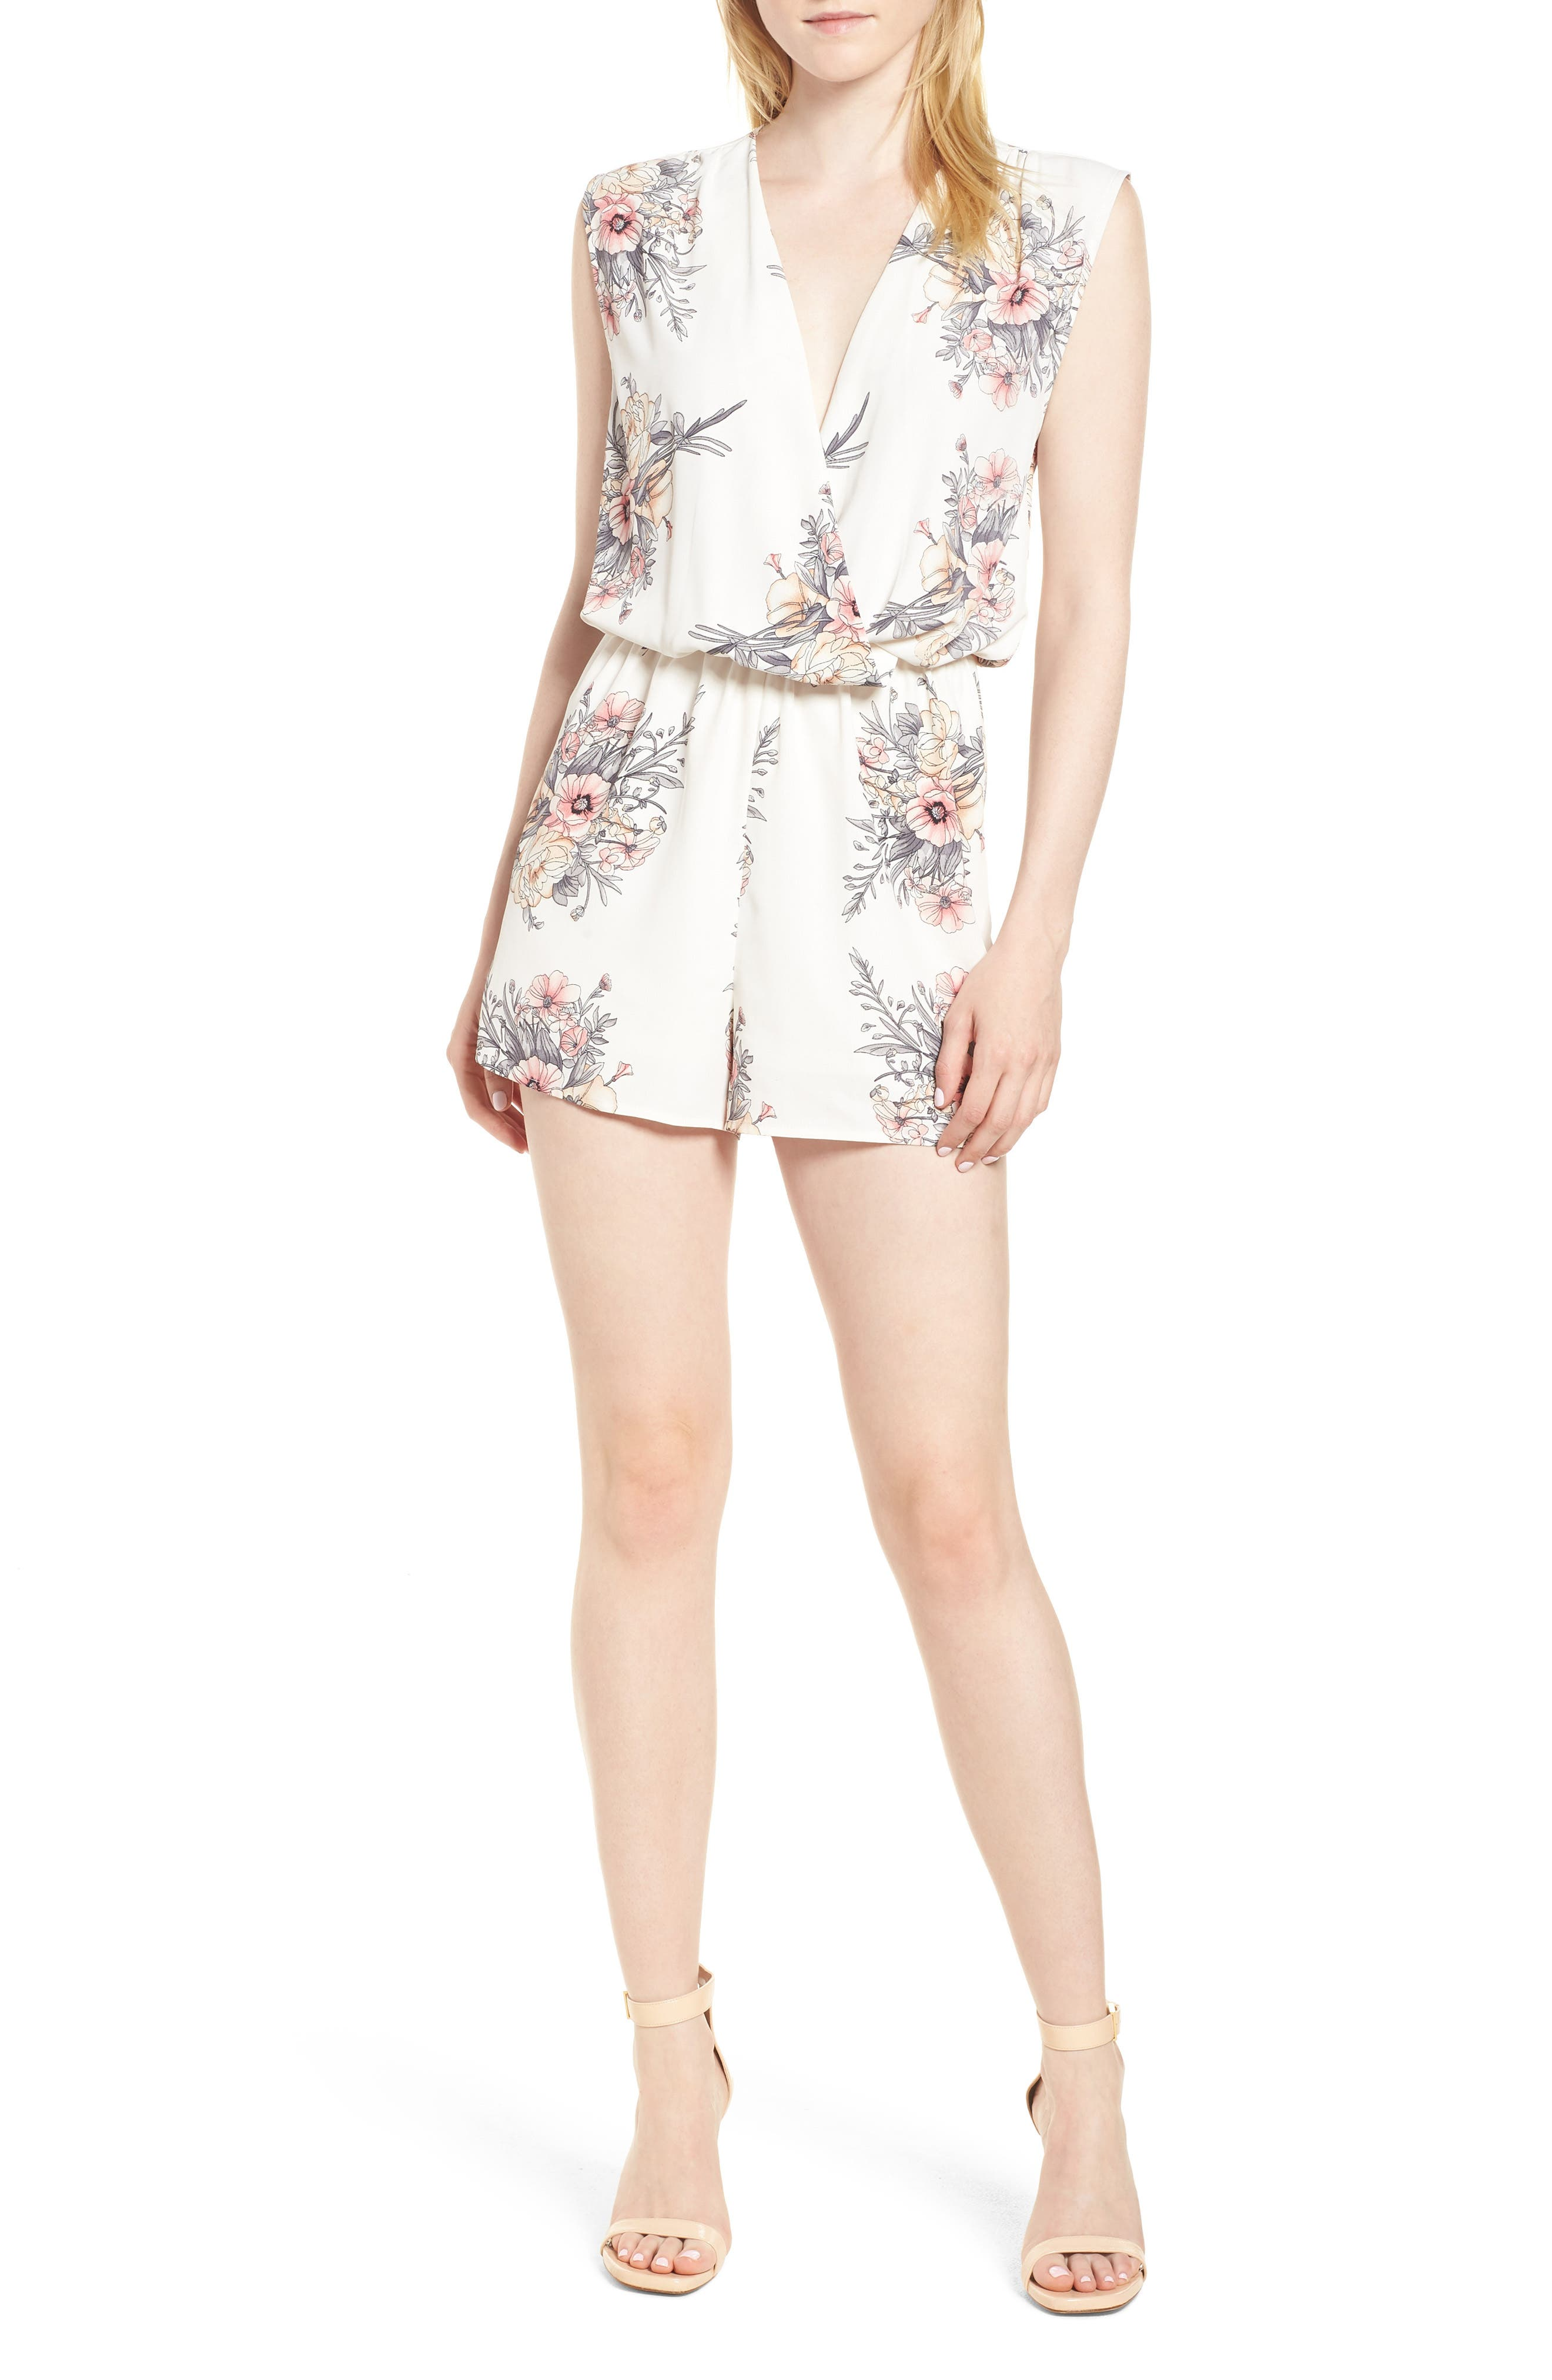 Bishop + Young Summer of Love Romper,                             Main thumbnail 1, color,                             Summer Of Love Print